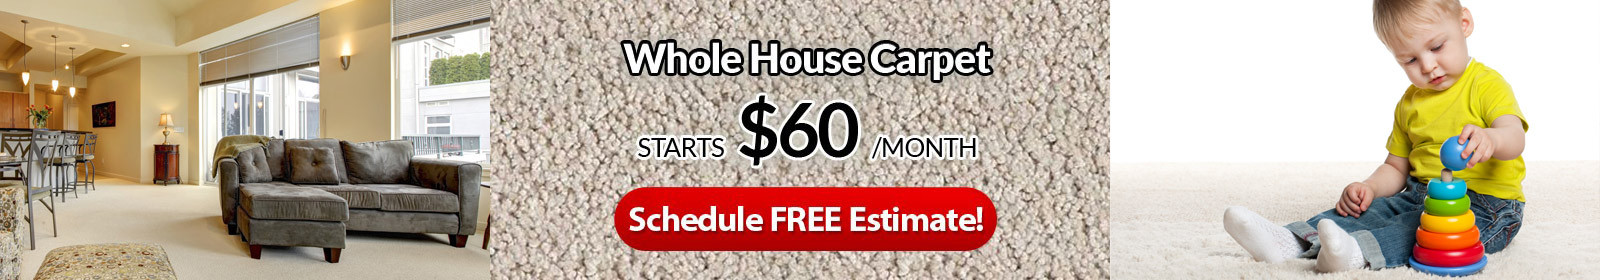 whole-house-carpet-installation-michigan